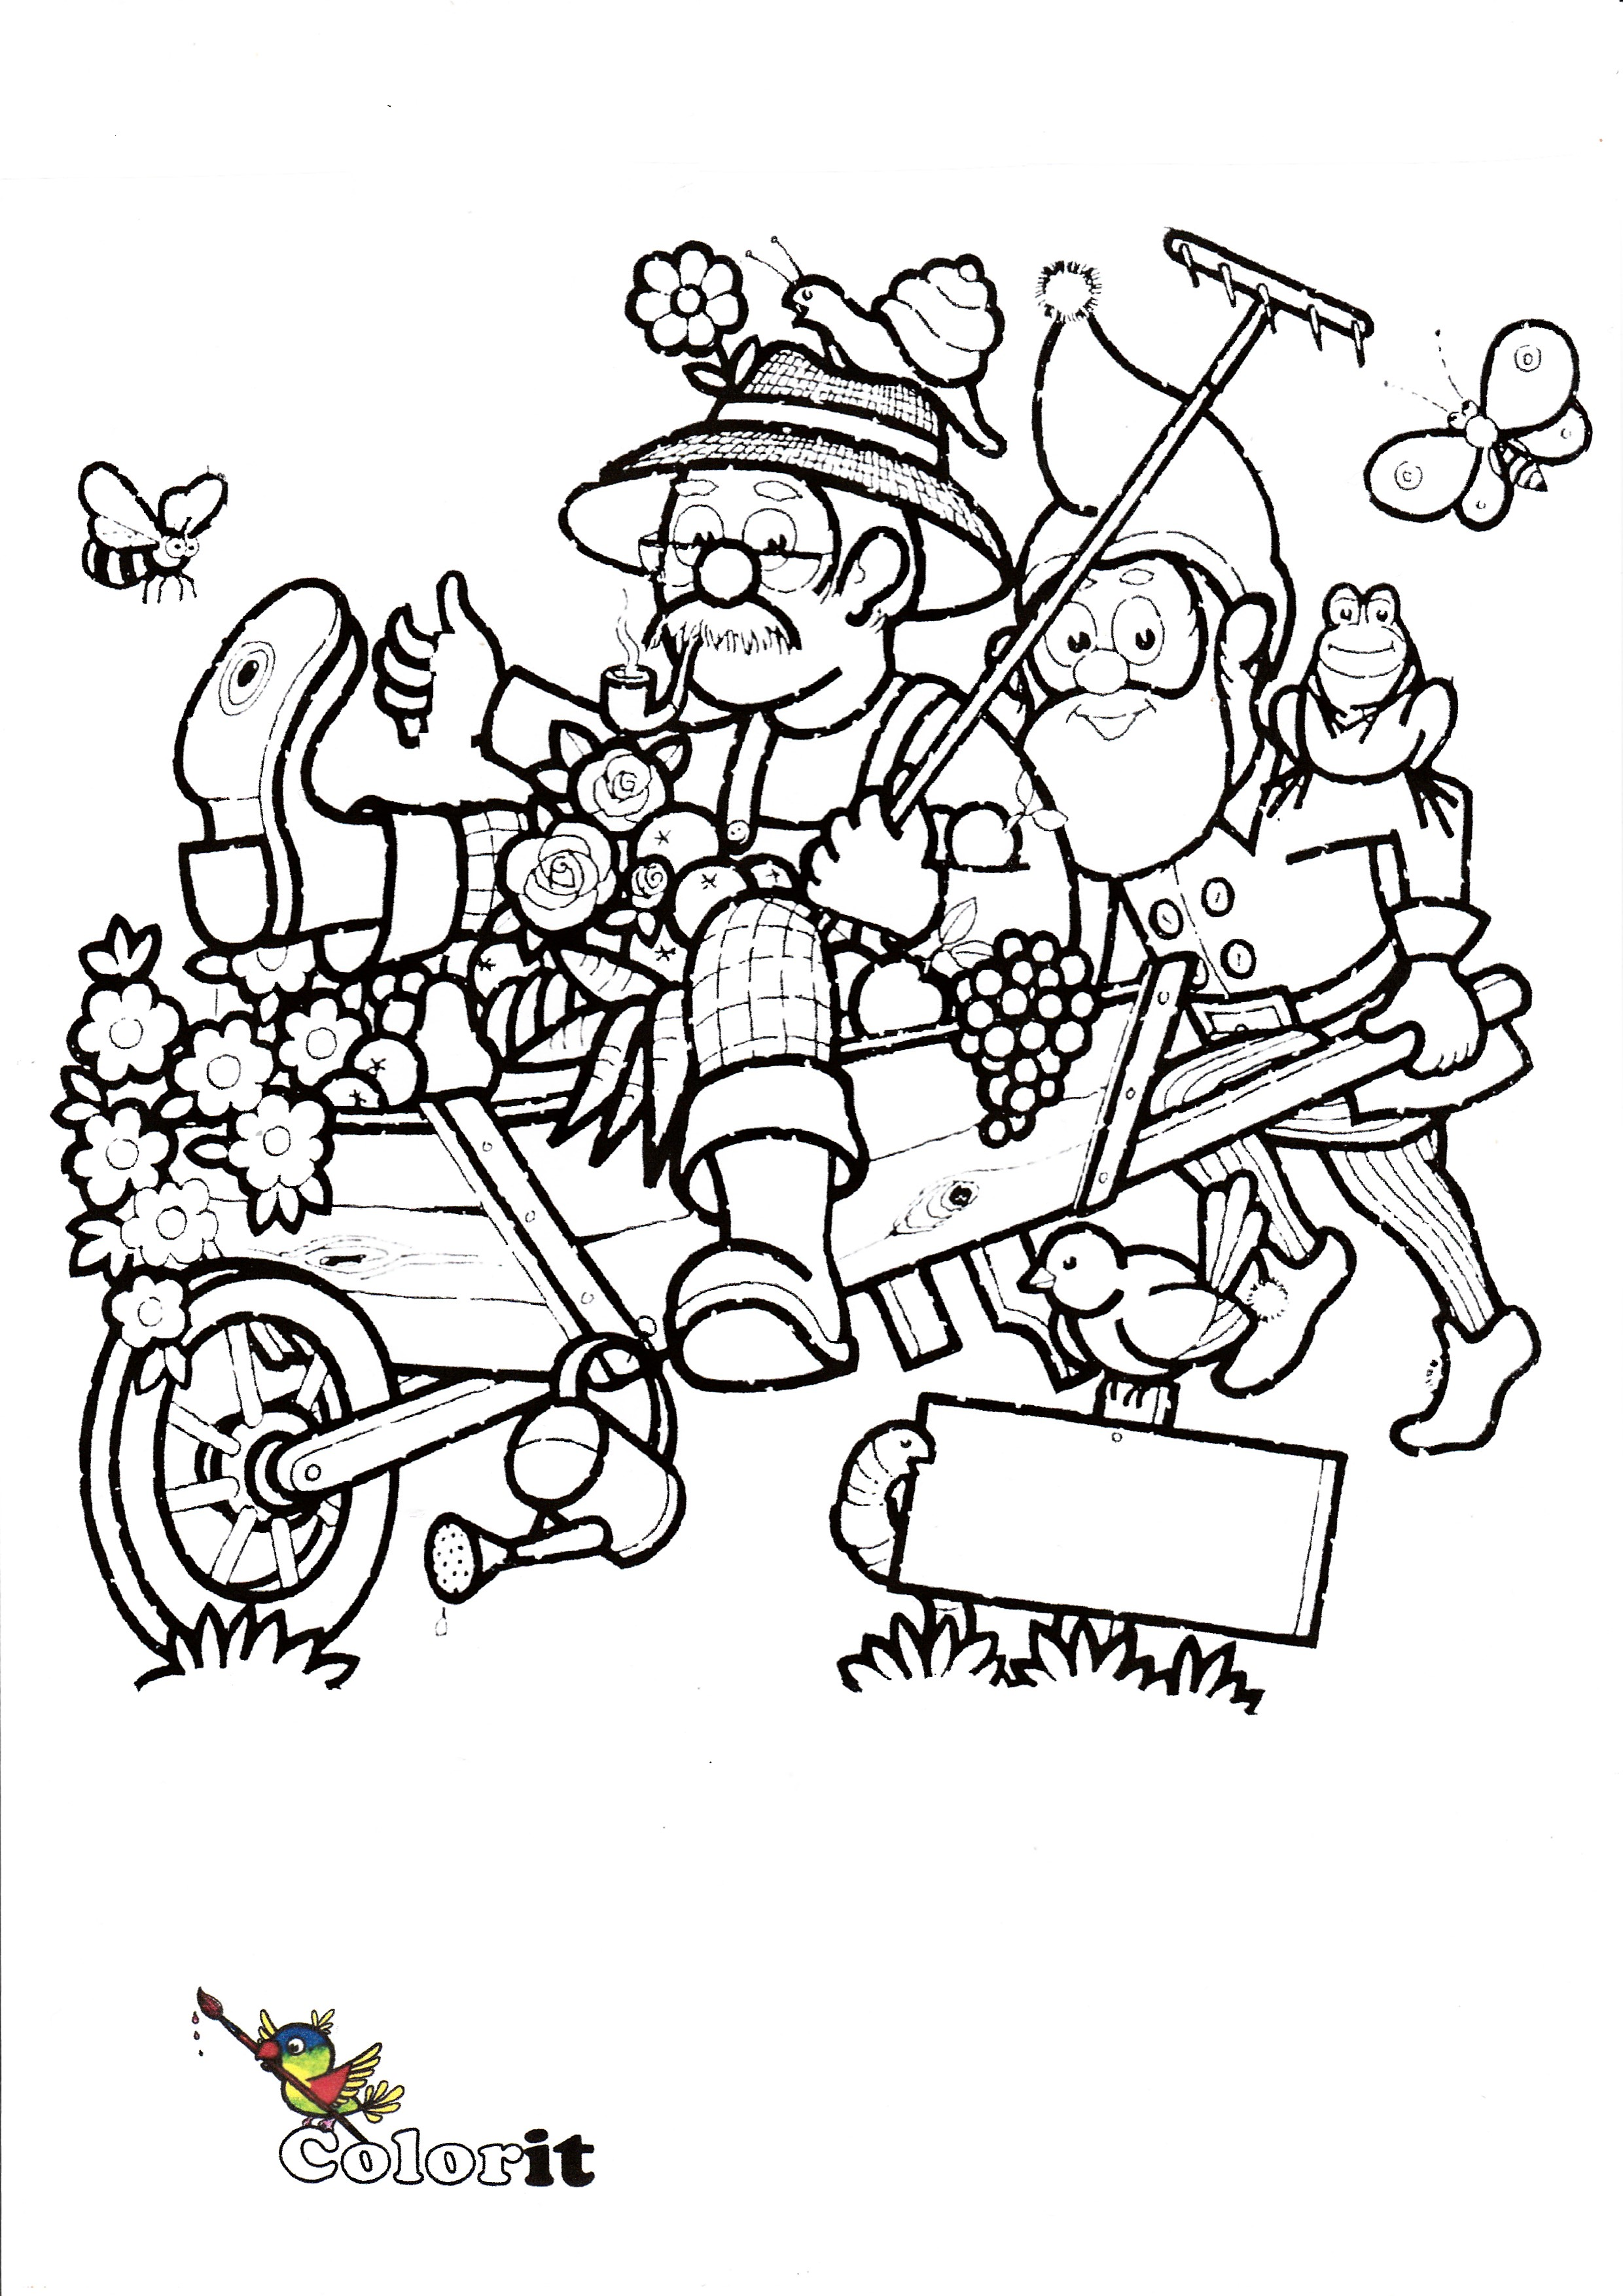 """""""Springtime on Parade"""" by Kees van Driel - Illustrated by Kees - Ourboox.com"""